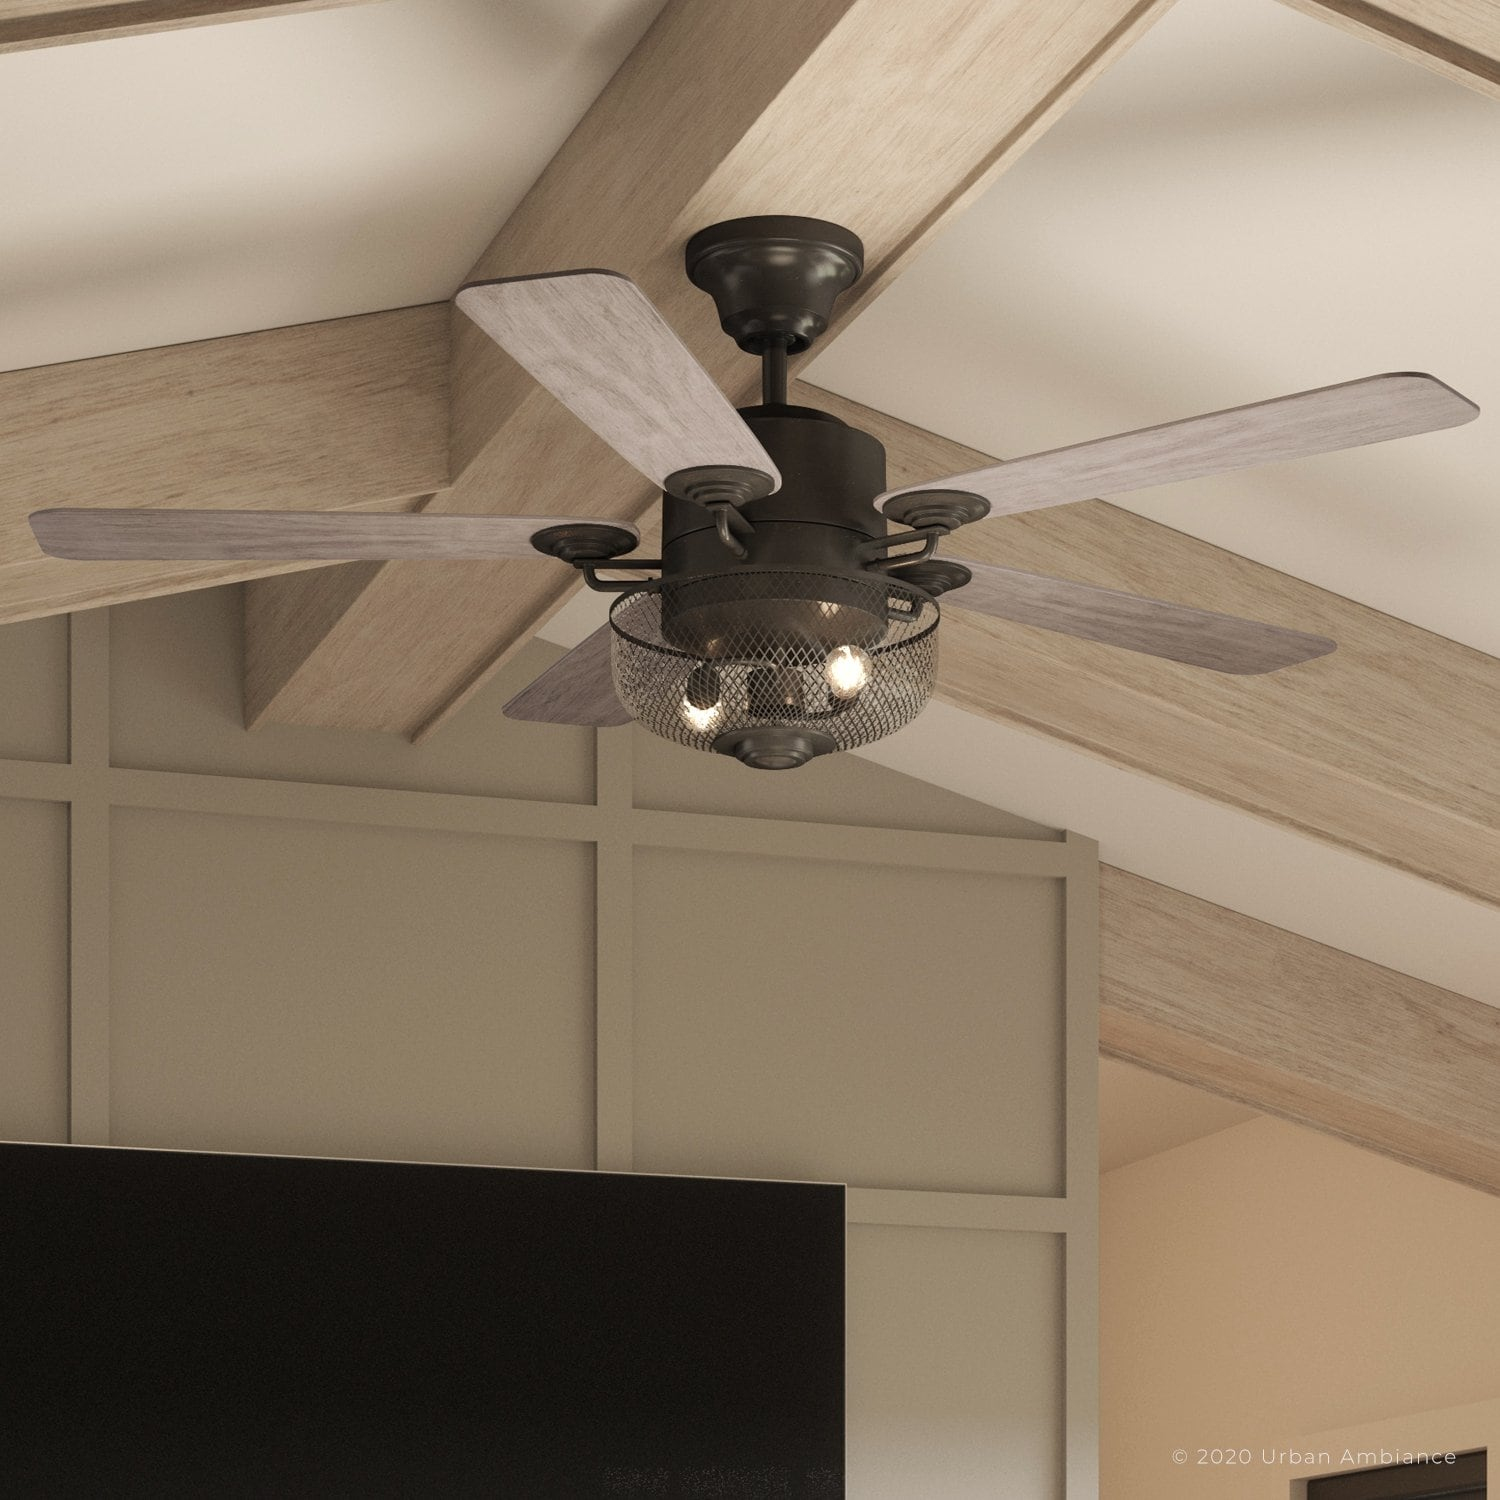 Luxury Vintage Indoor Ceiling Fan 20 H X 54 W With Modern Farmhouse Style Olde Iron Finish Uhp9100 By Urban Ambiance Overstock 32450266